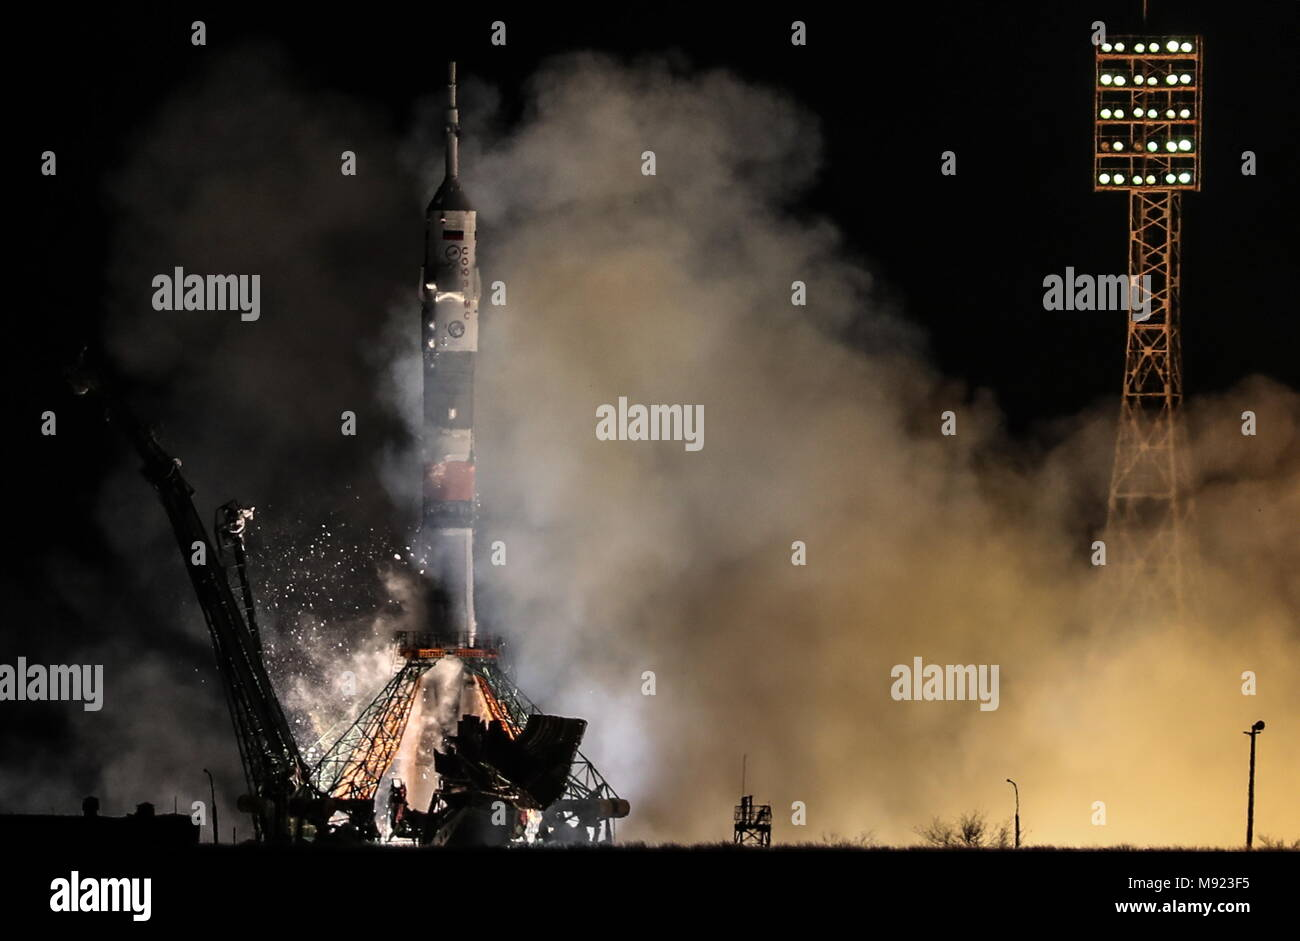 Kazakhstan. 21st Mar, 2018. KAZAKHSTAN - MARCH 21, 2018: A Soyuz-FG rocket booster carrying the Soyuz MS-08 spacecraft with the ISS Expedition 55/56 main crew of Roscosmos cosmonaut Oleg Artemyev and NASA astronauts Richard Arnold, Andrew J. Feustel aboard blasts off to the International Space Station from the Baikonur Cosmodrome. Sergei Savostyanov/TASS Credit: ITAR-TASS News Agency/Alamy Live News - Stock Image